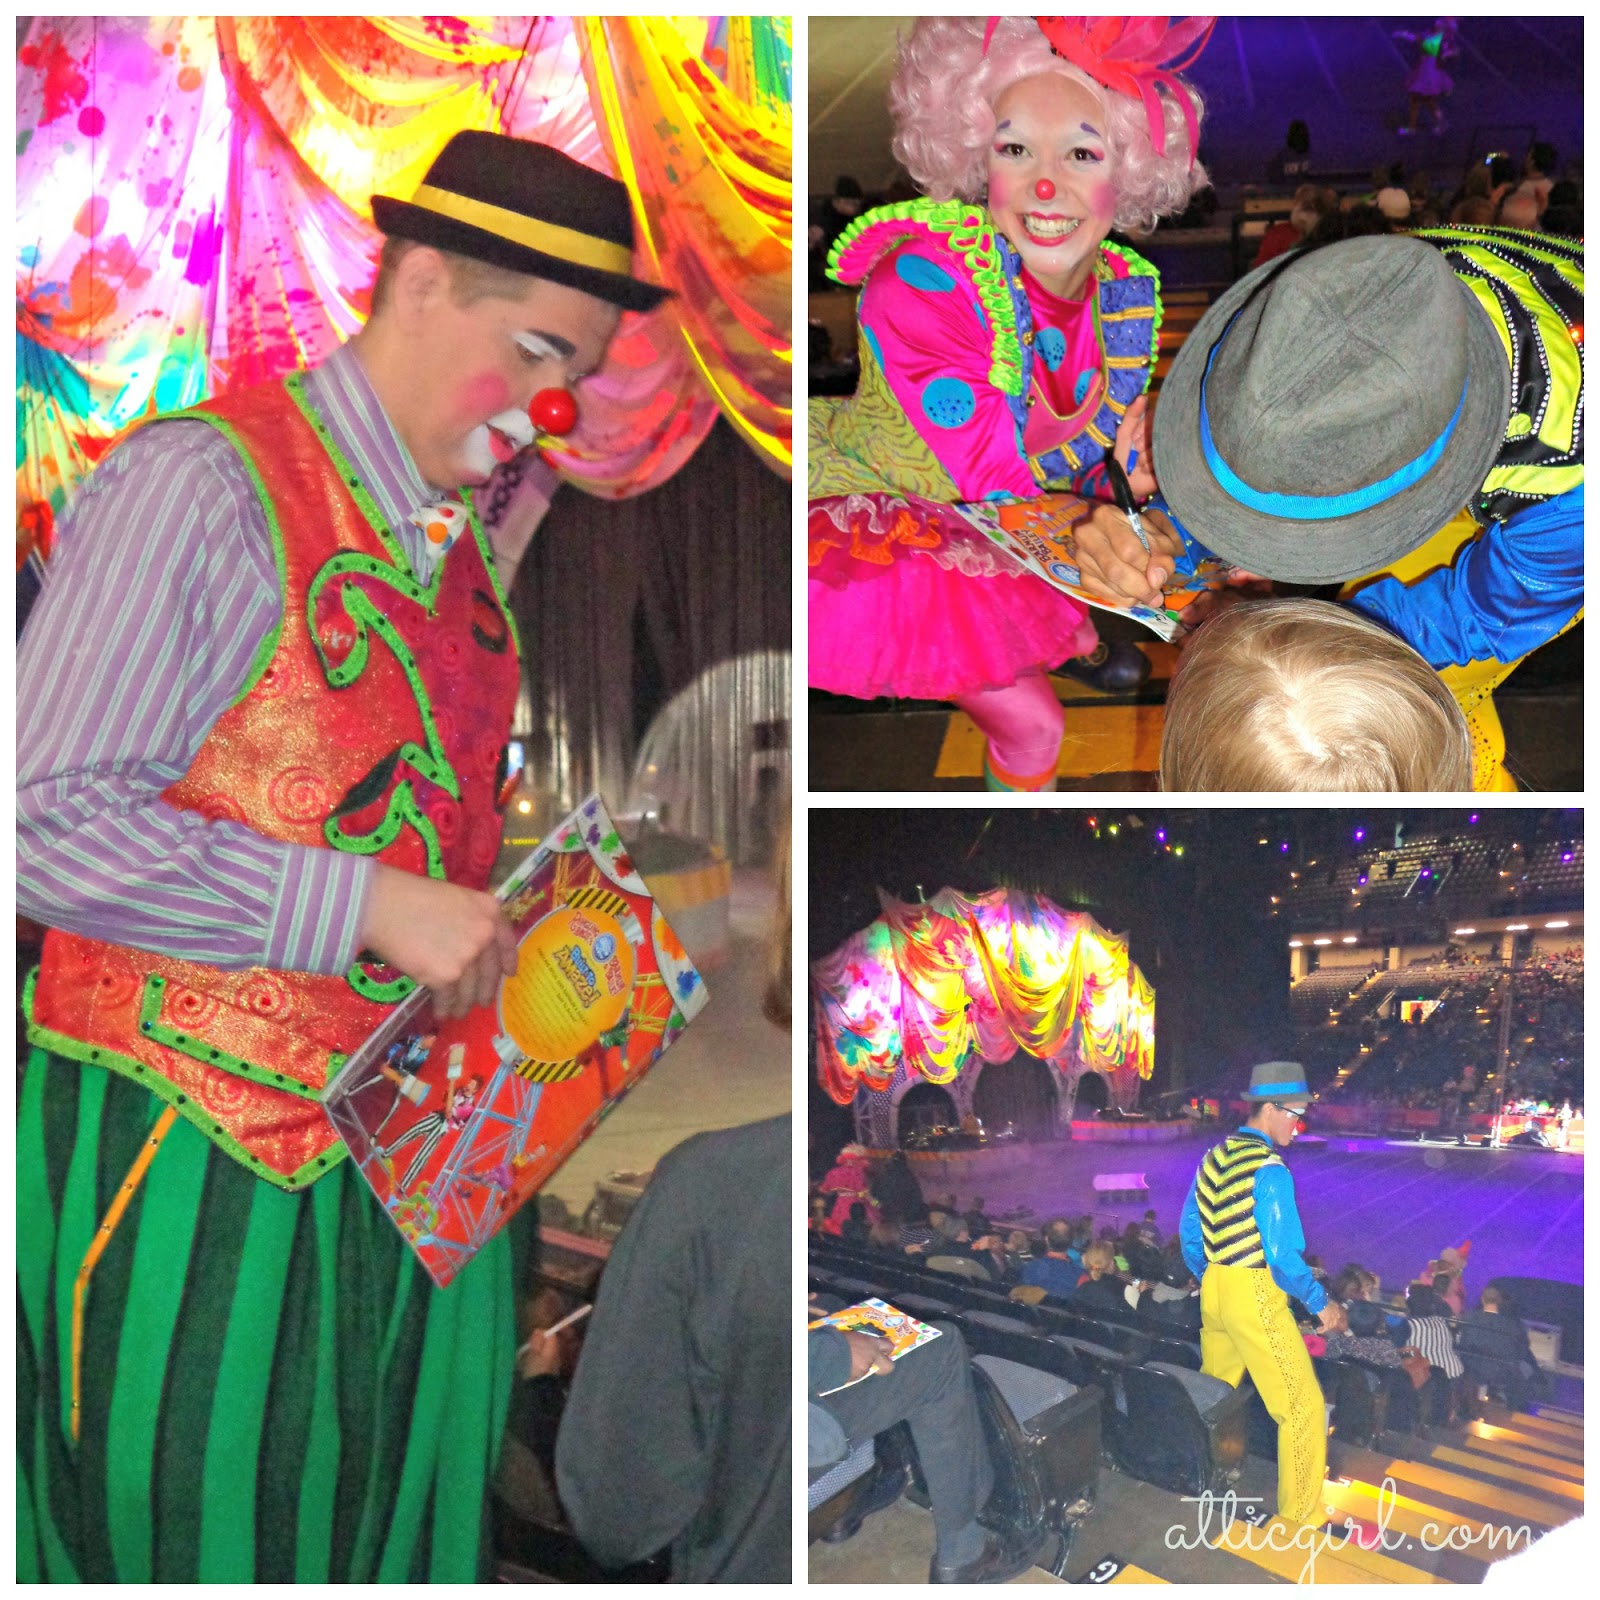 circus, Baltimore, Ringling Bros., Feld Entertainment